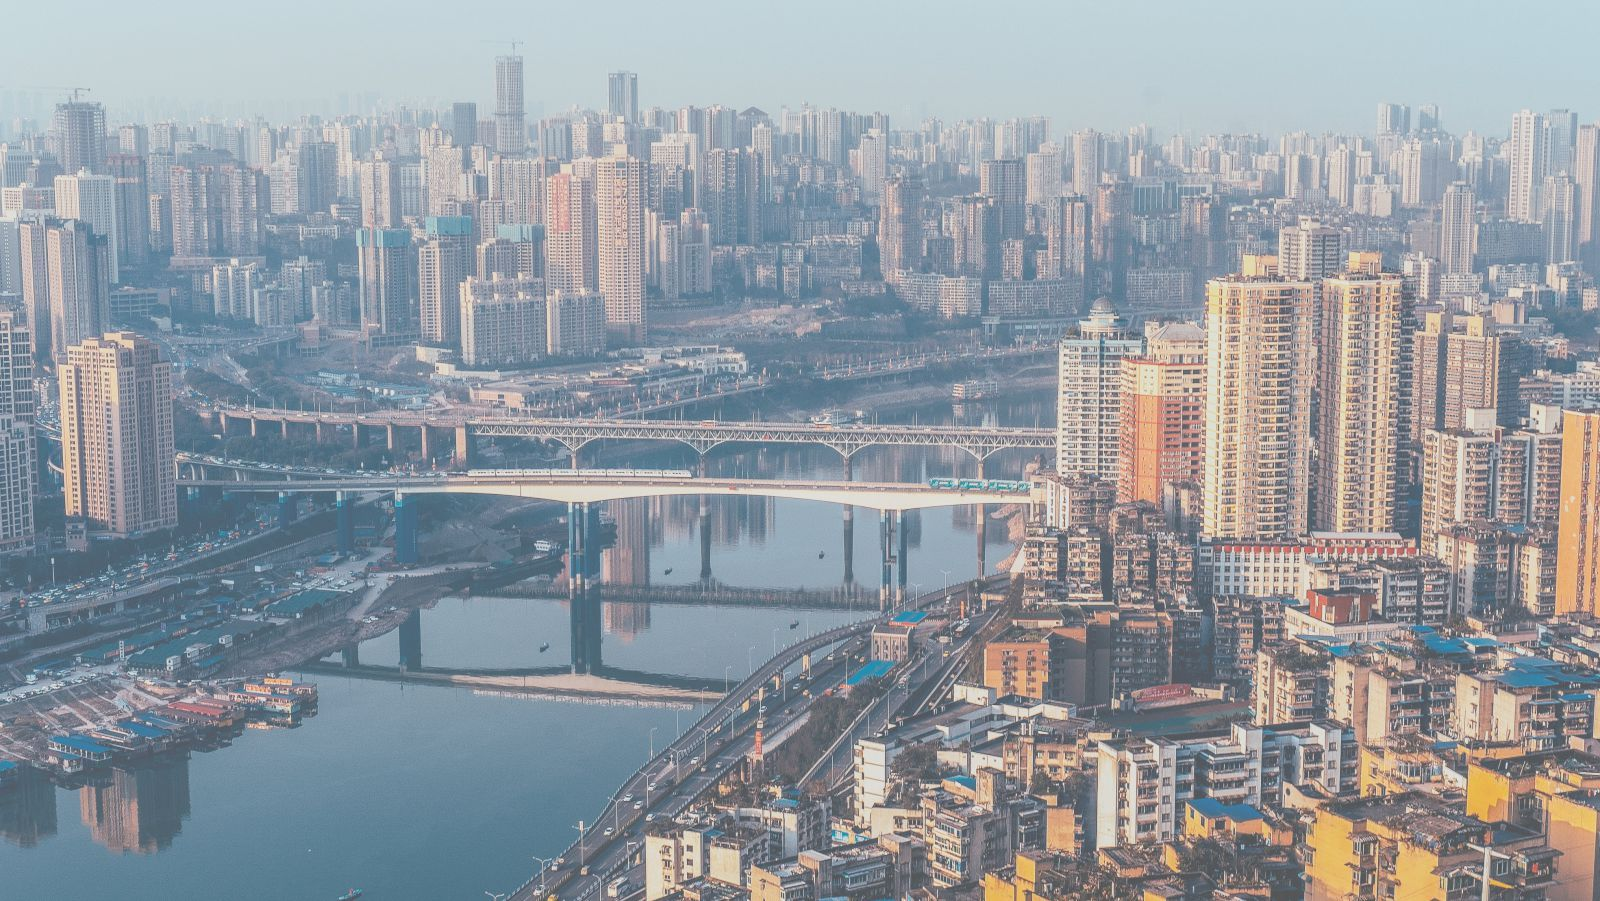 China S Extreme Income Inequality Finally Appears To Be Falling Travel Chongqing China Travel